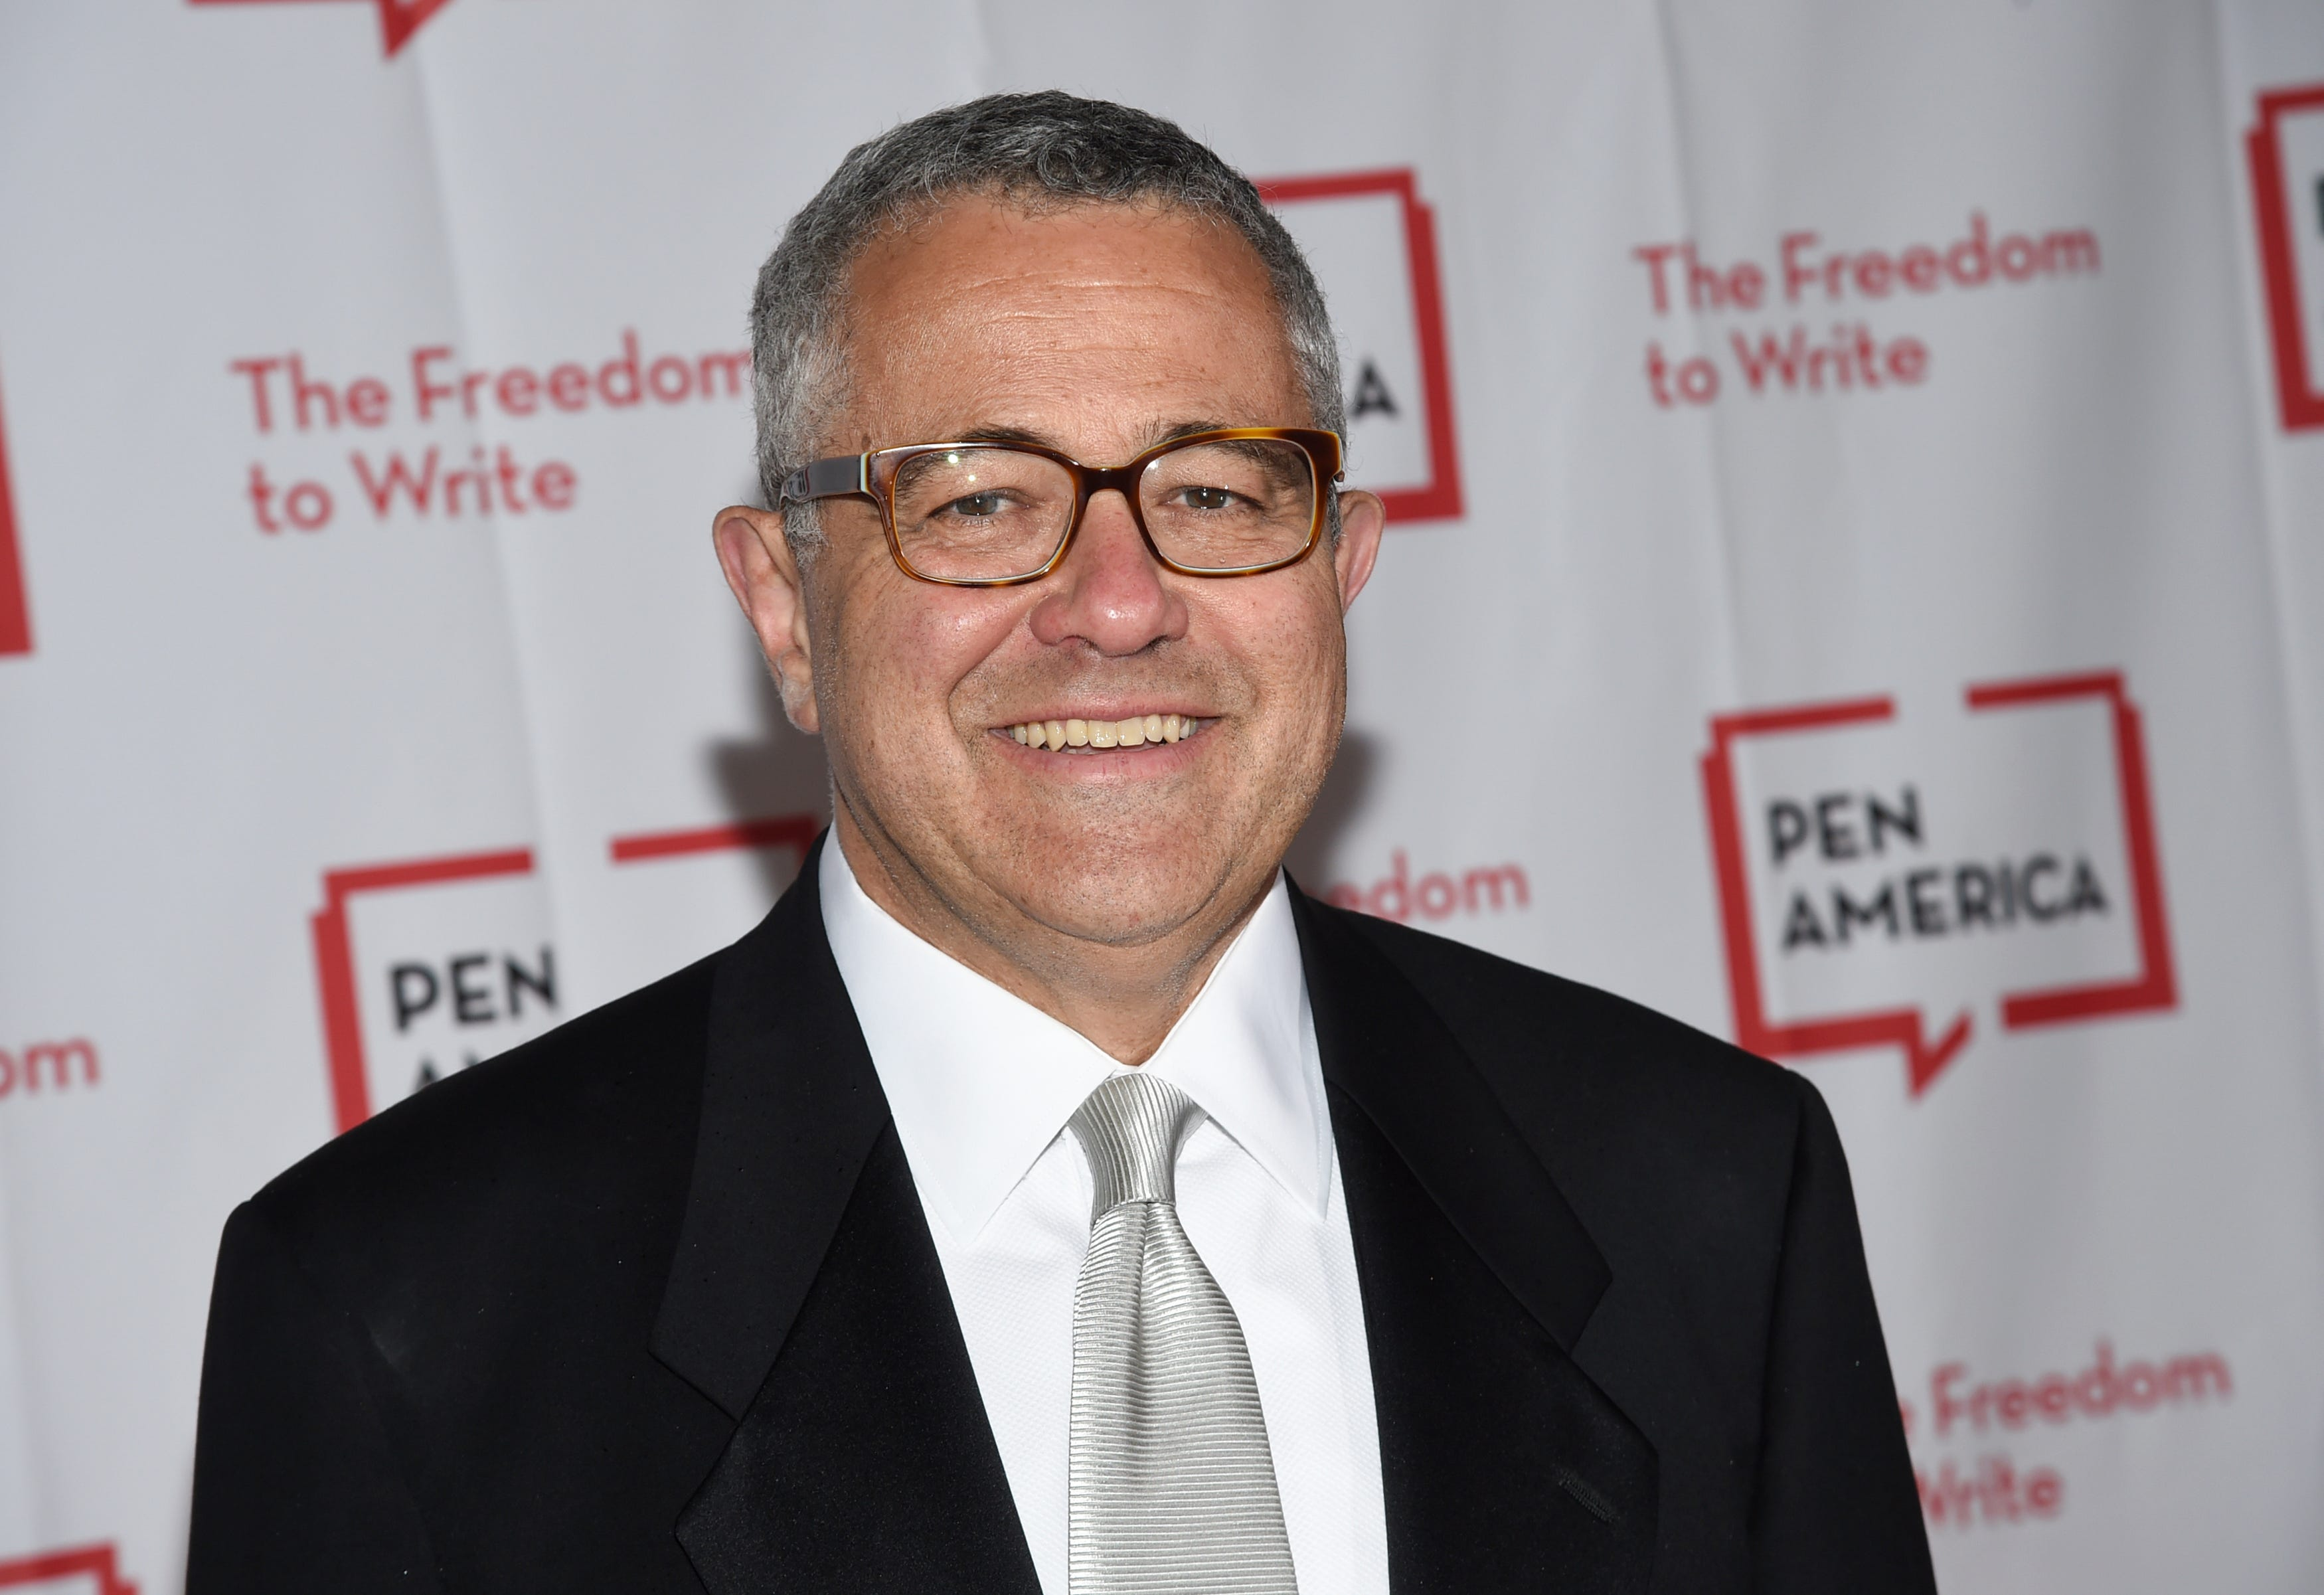 Jeffrey Toobin returns as CNN legal analyst, apologizes for exposing himself on Zoom call